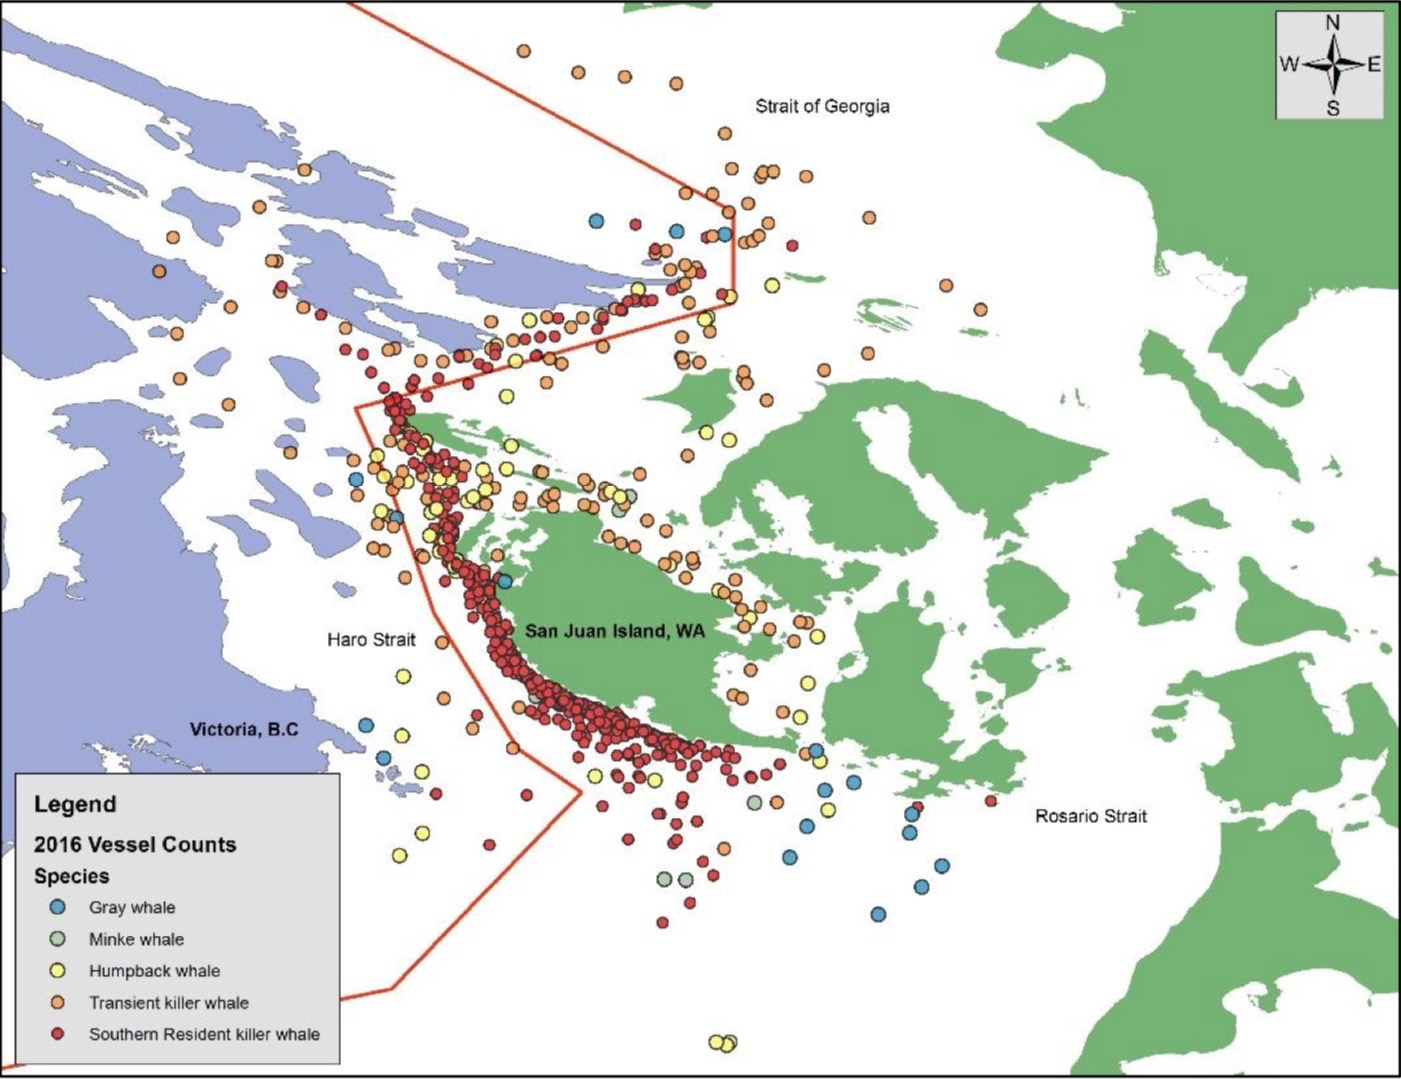 Red dots are Southern Resident killer whales in their core critical feeding habitat off the west side of San Juan Island. Photo credit: Soundwatch Boater Education Study, 2016.